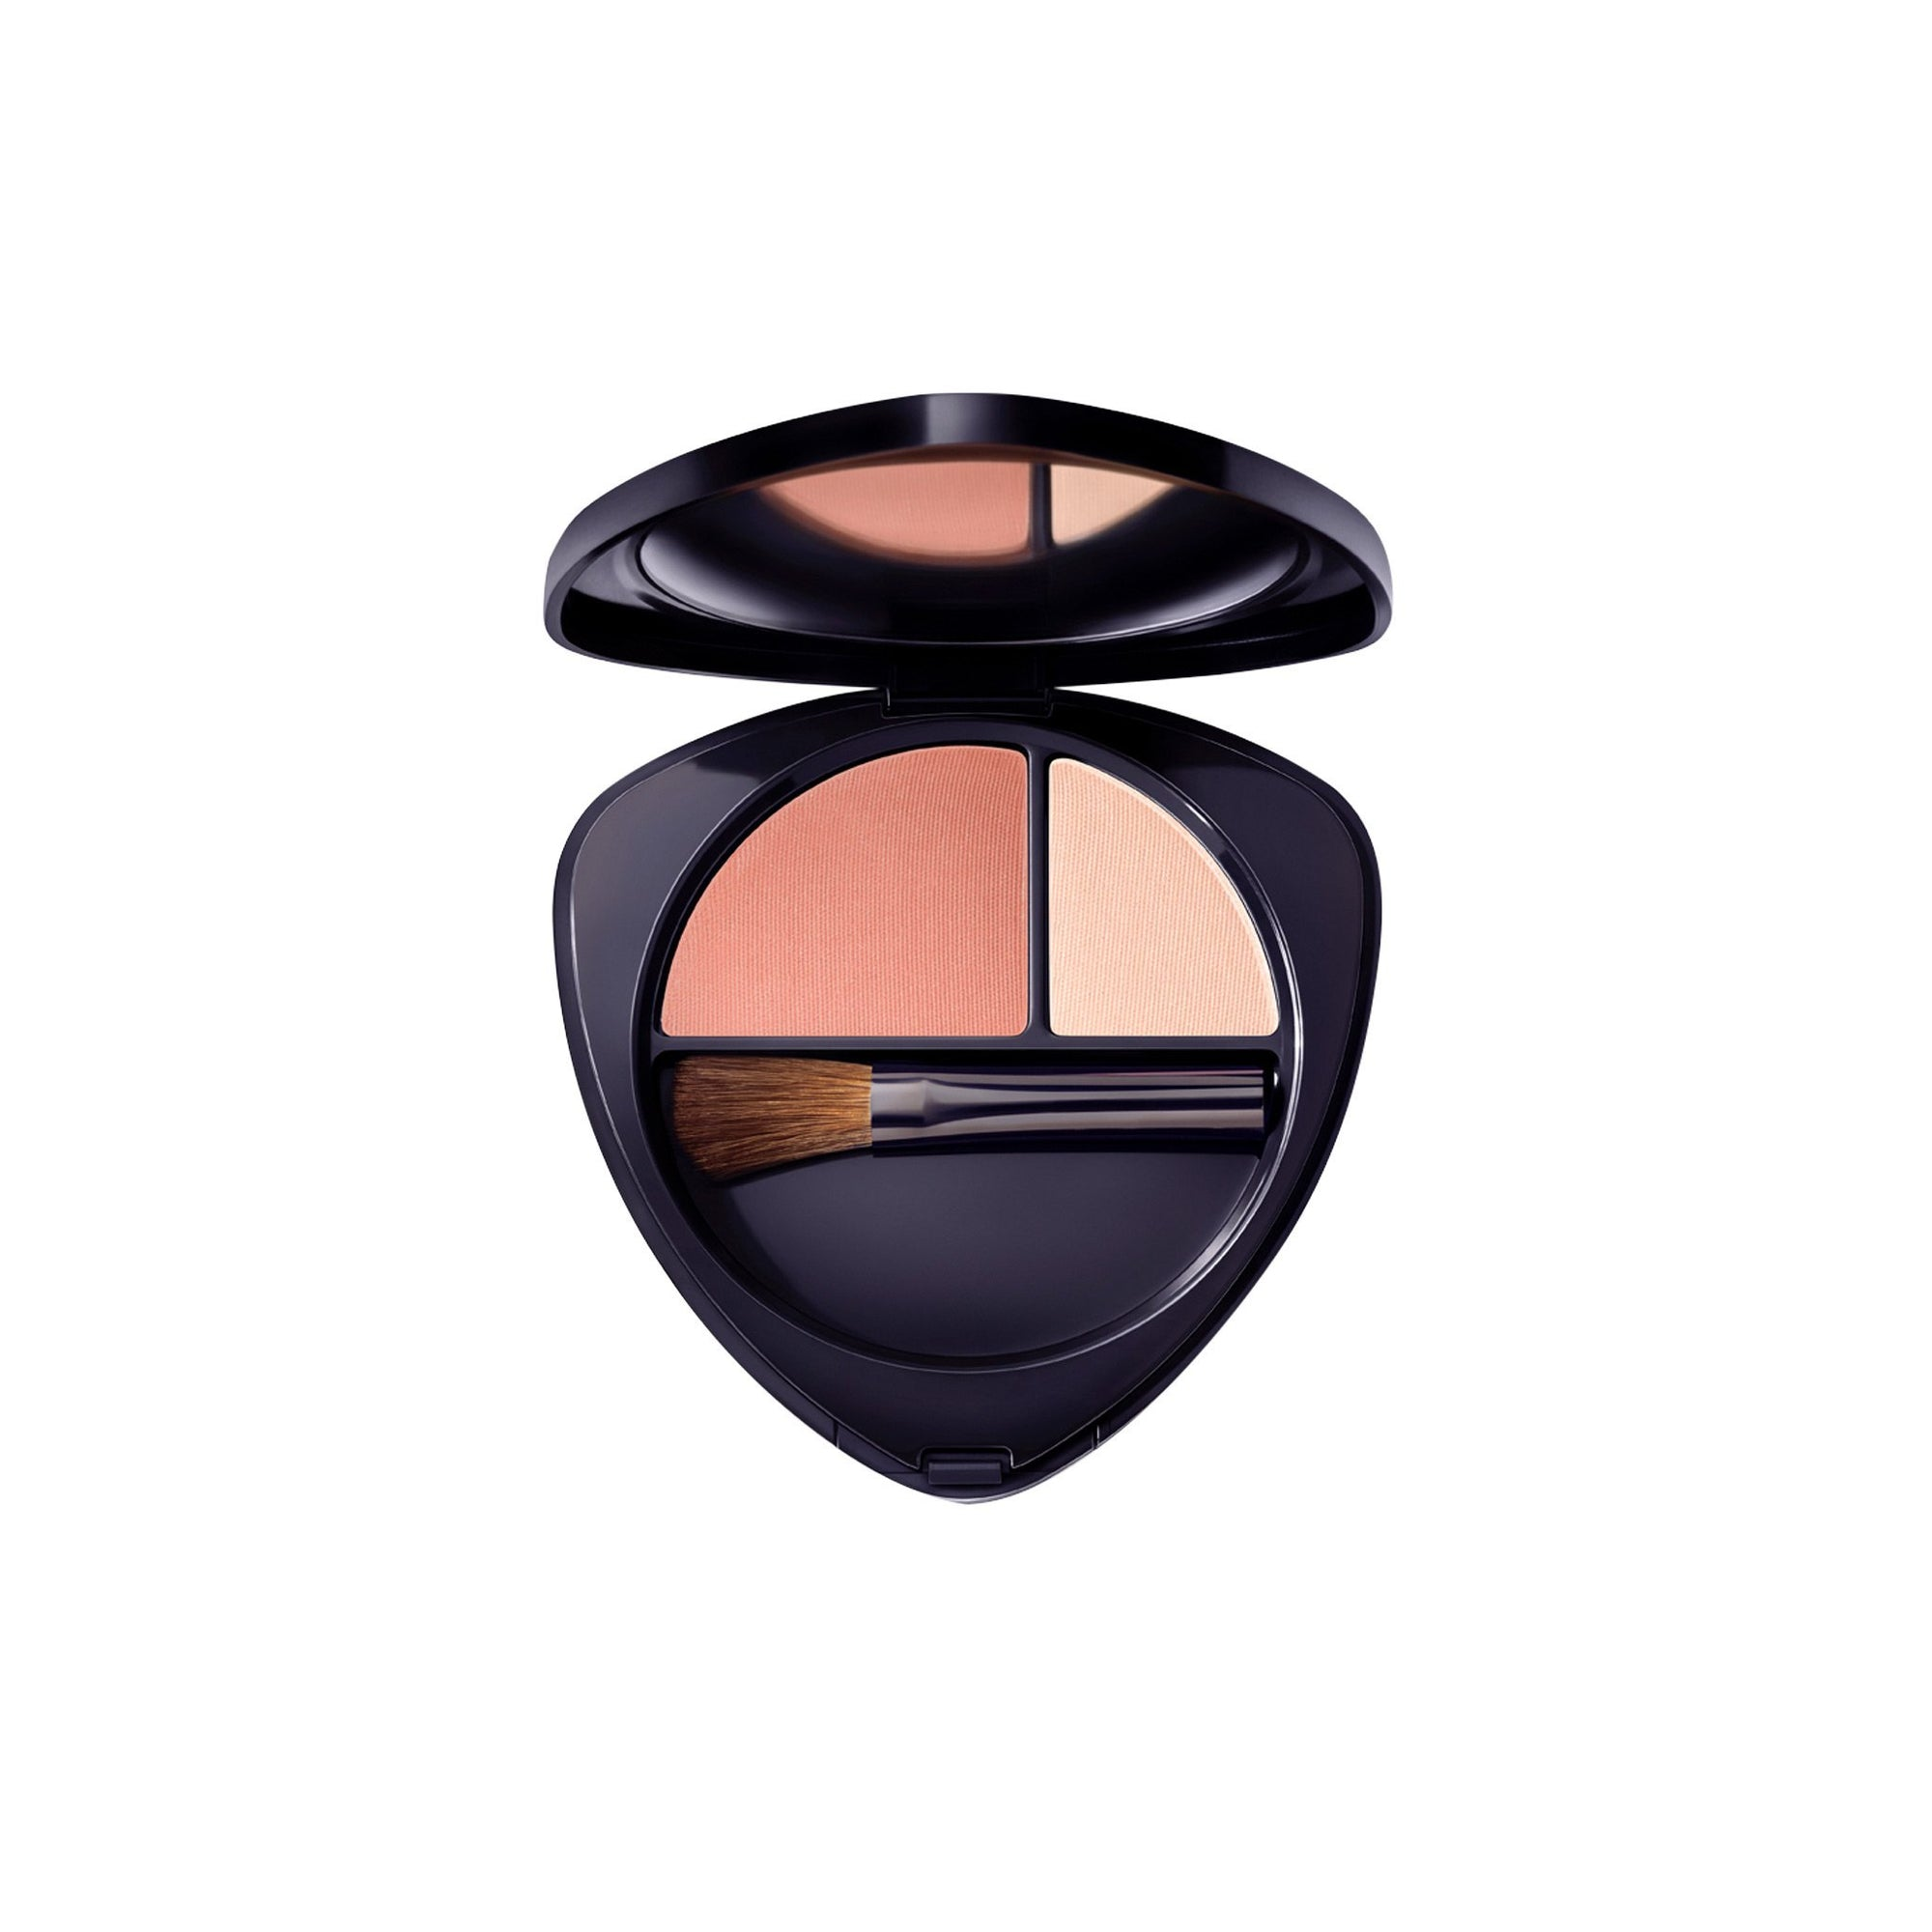 Dr Hauschka Blush Duo 5.7g